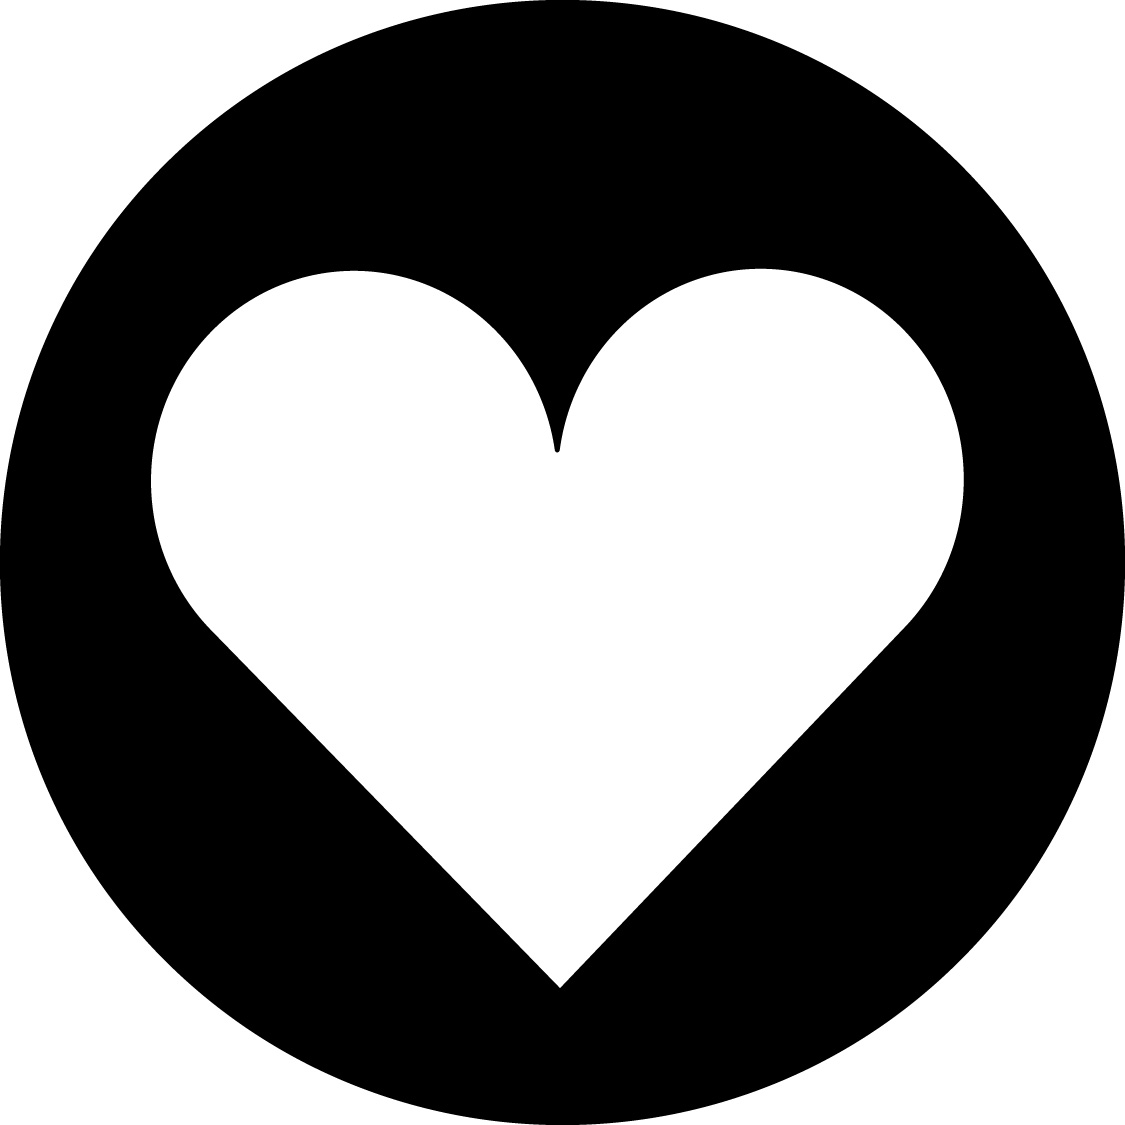 Black And White Heart Pictures | Free download on ClipArtMag